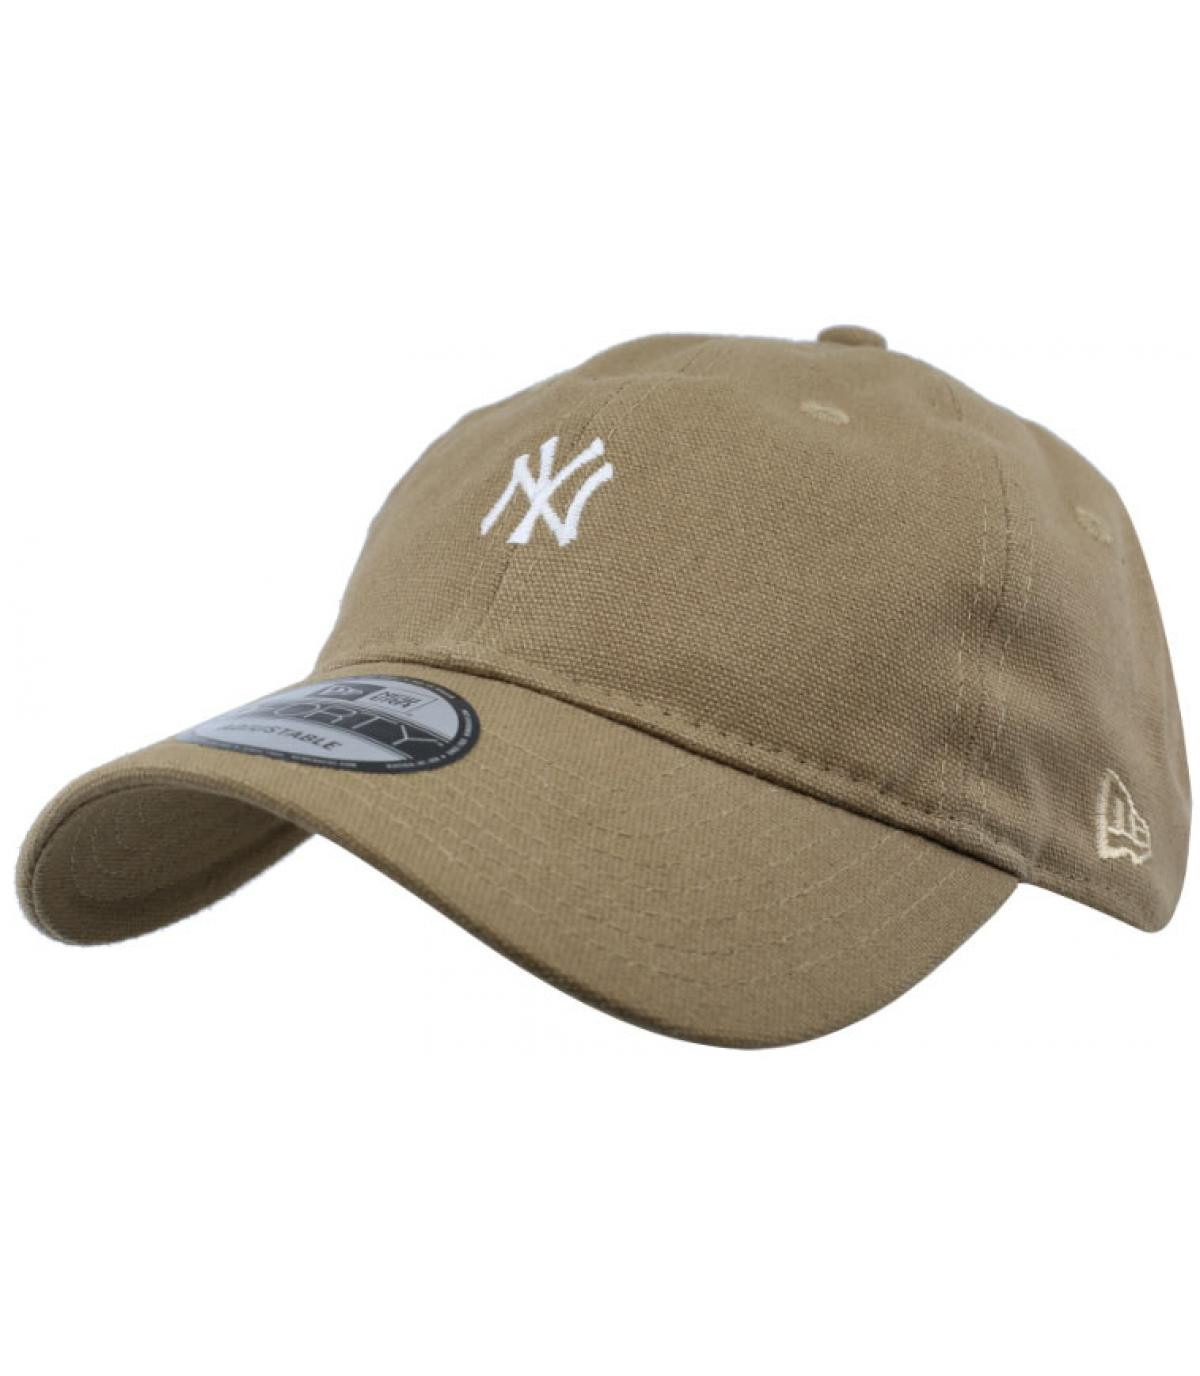 casquette NY camel